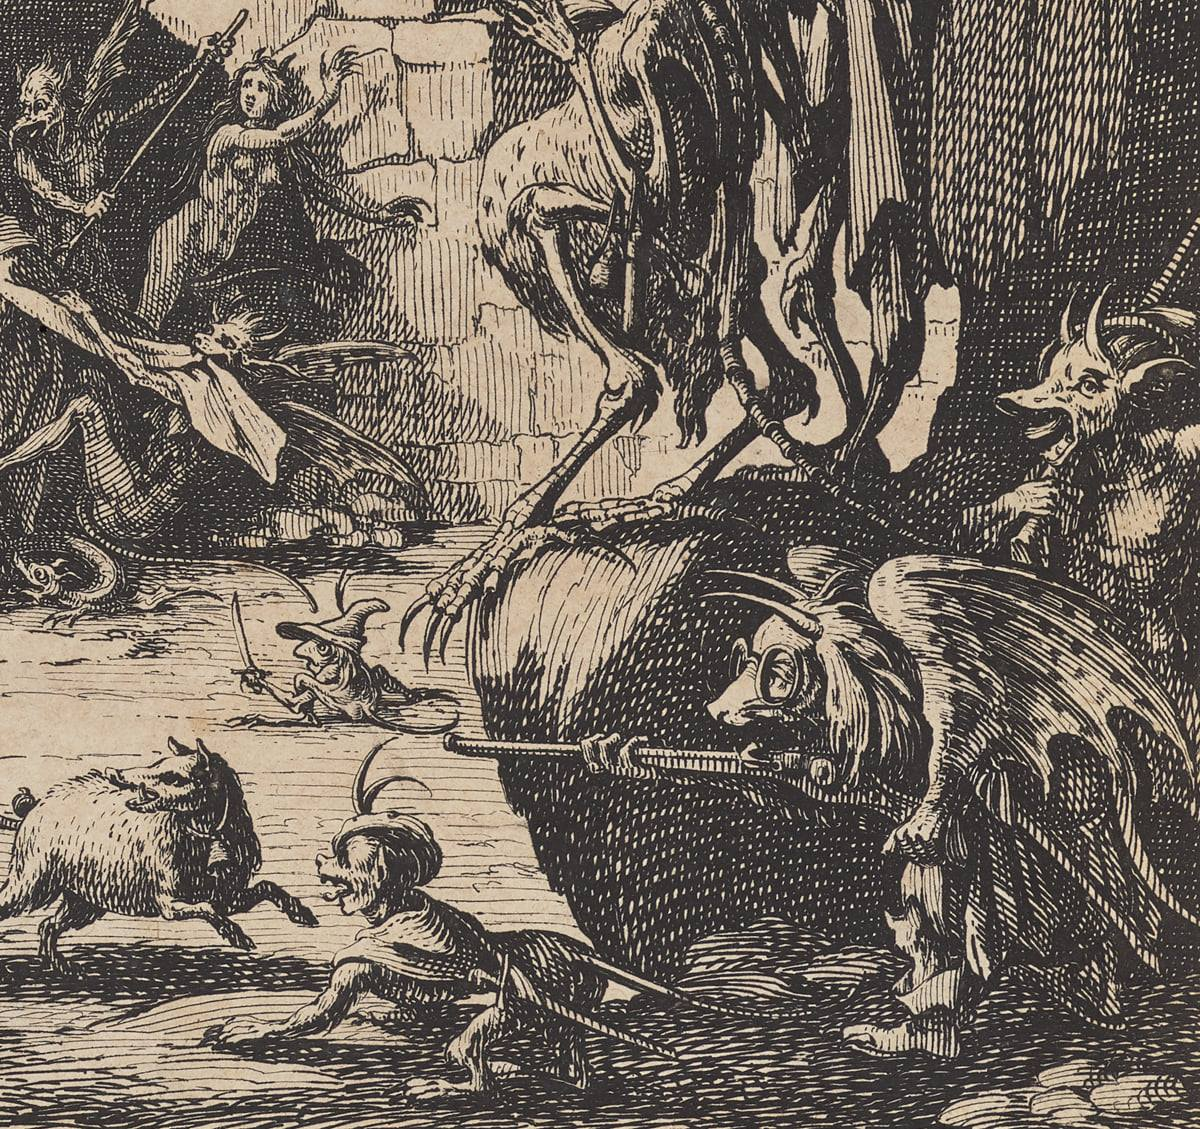 Detail showing demons and monsters looking on at the torture of St Anthony from a nearby boulder. Two winged, horned demons shelter behind the boulder, one holding a long barreled gun and wearing spectacles. Another dog-like beast stands near the boulder while a sheep-like creature runs towards it. The legs of other creatures are partially seen standing on the boulder.